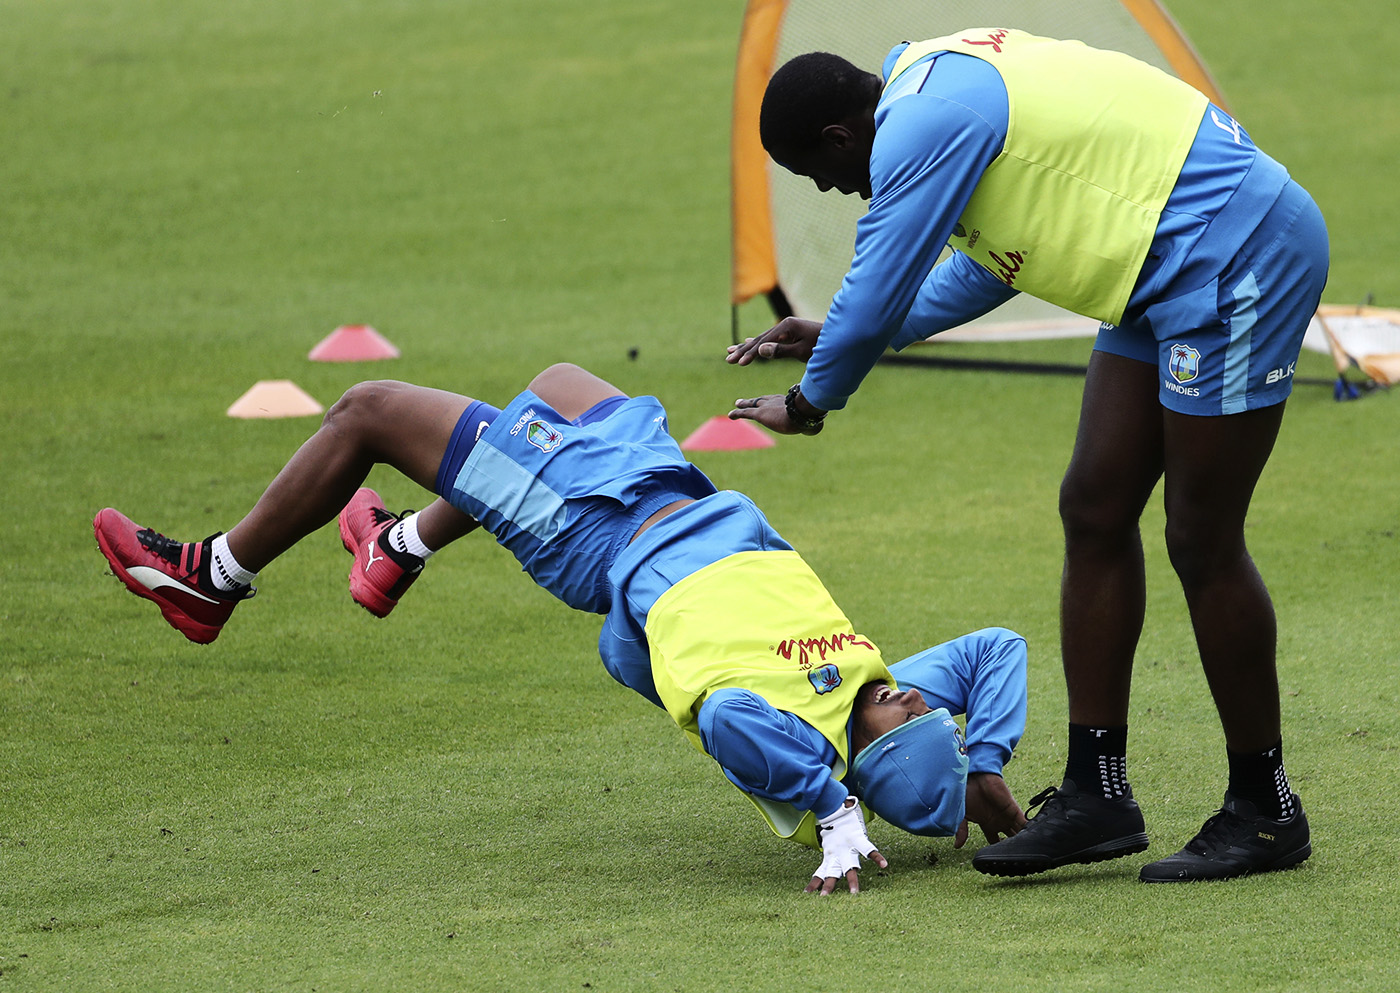 Nicholas Pooran at training with Carlos Brathwaite. Core strength is vital for players like Pooran, who need to clear the boundary at will